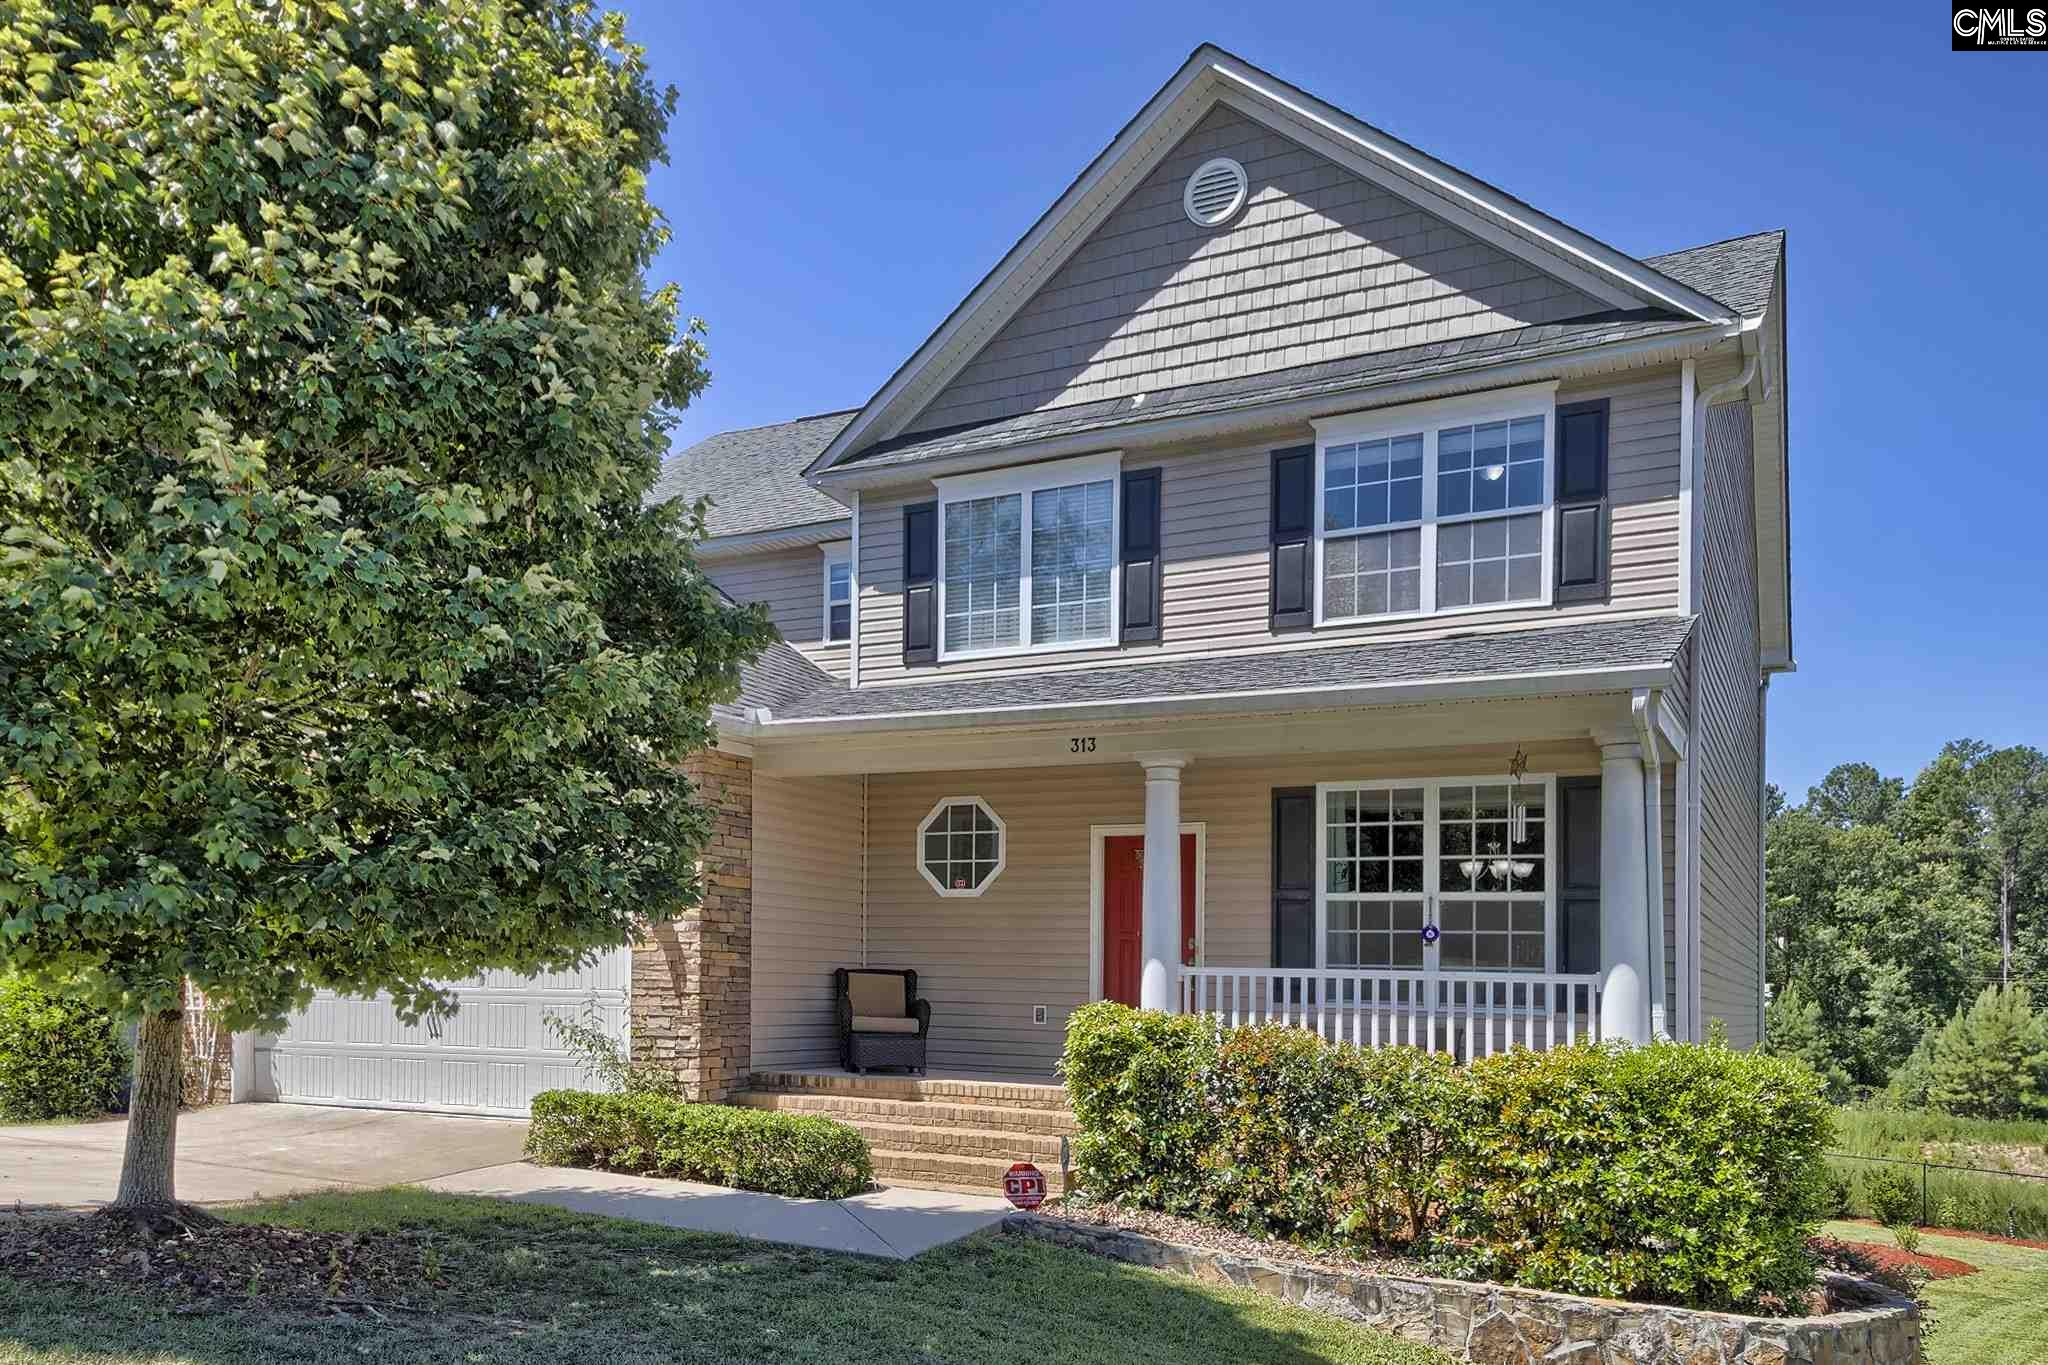 313 Allenbrooke Lexington, SC 29072